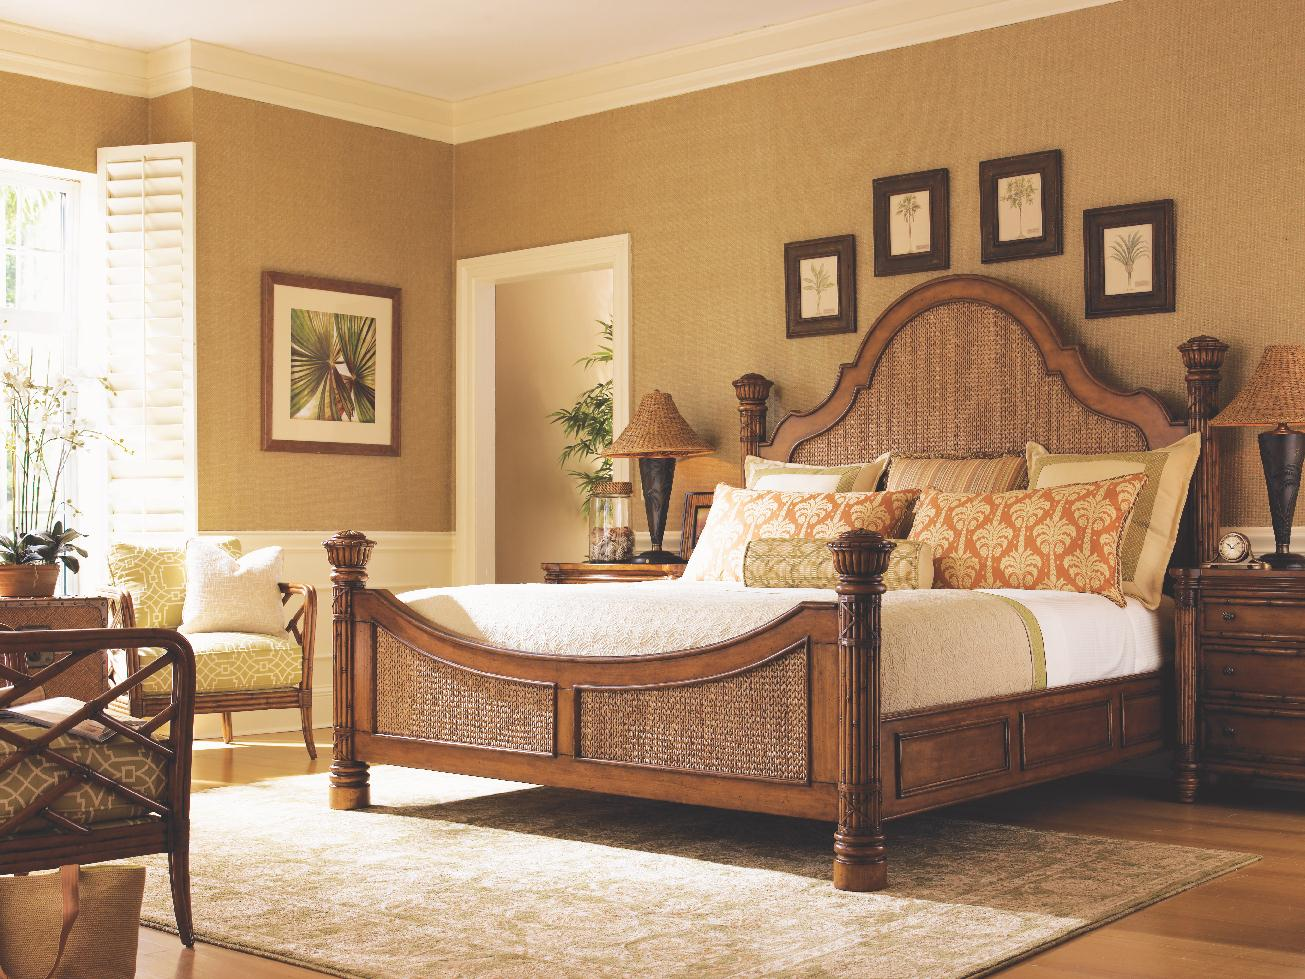 Cheap Bedroom Sets For Sale Tommy Bahama Island Estate Round Hill Bedroom Set Sale Ends Feb 17